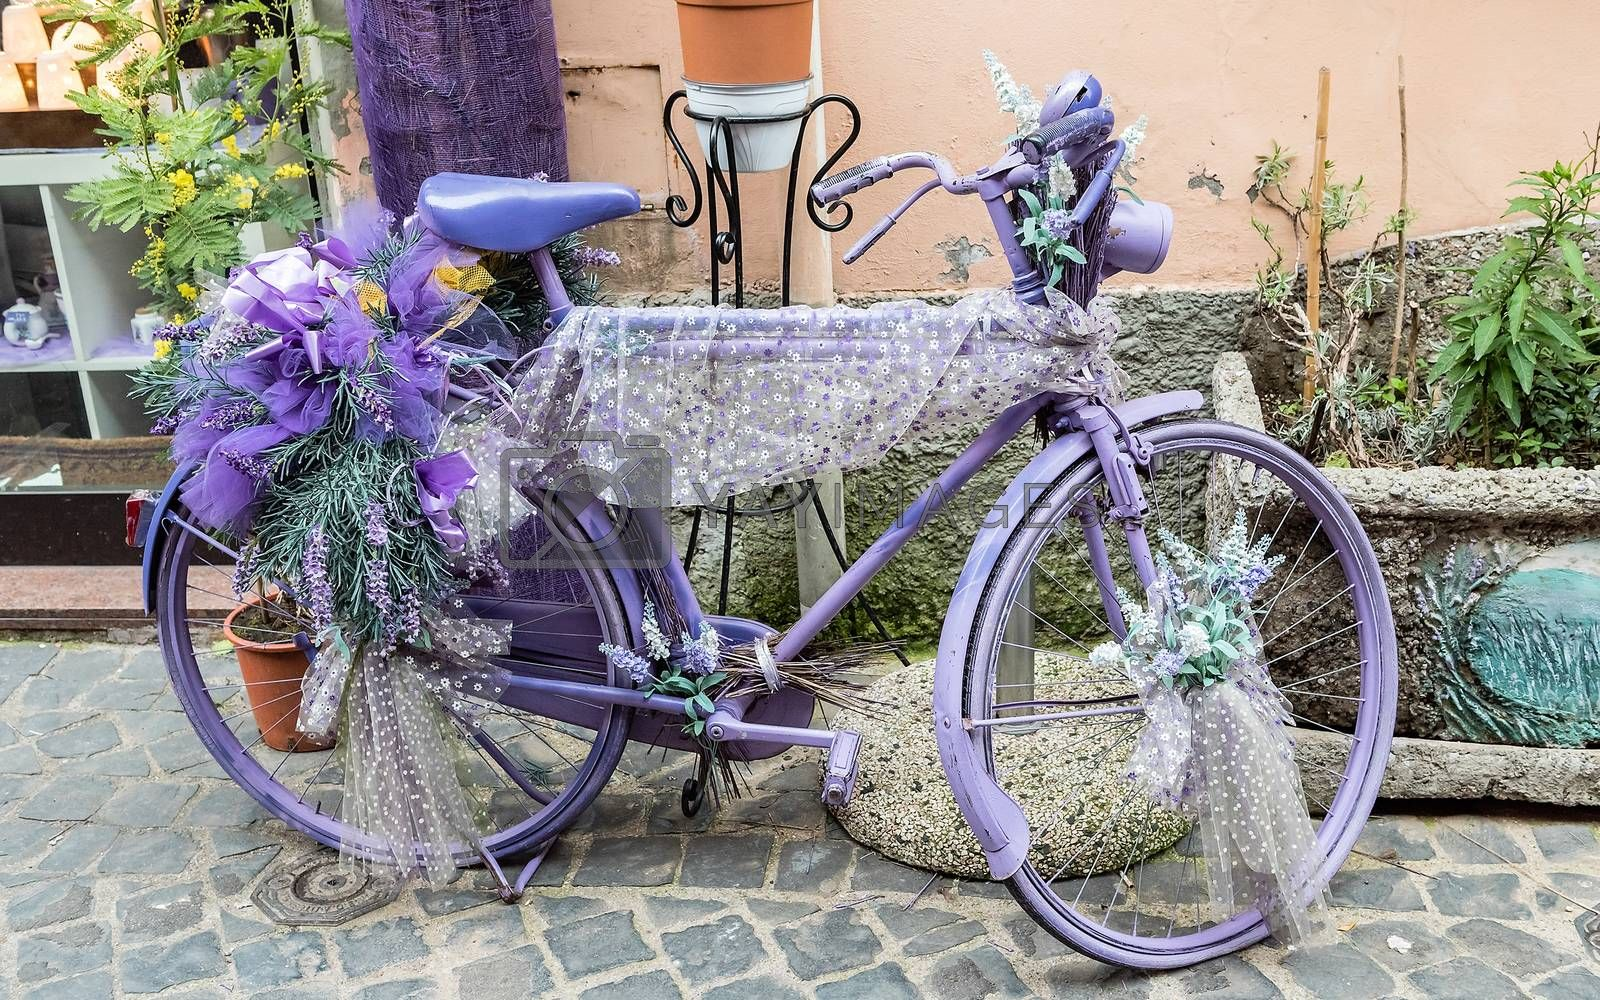 Vintage violet bicycle decorated with flowers and laces